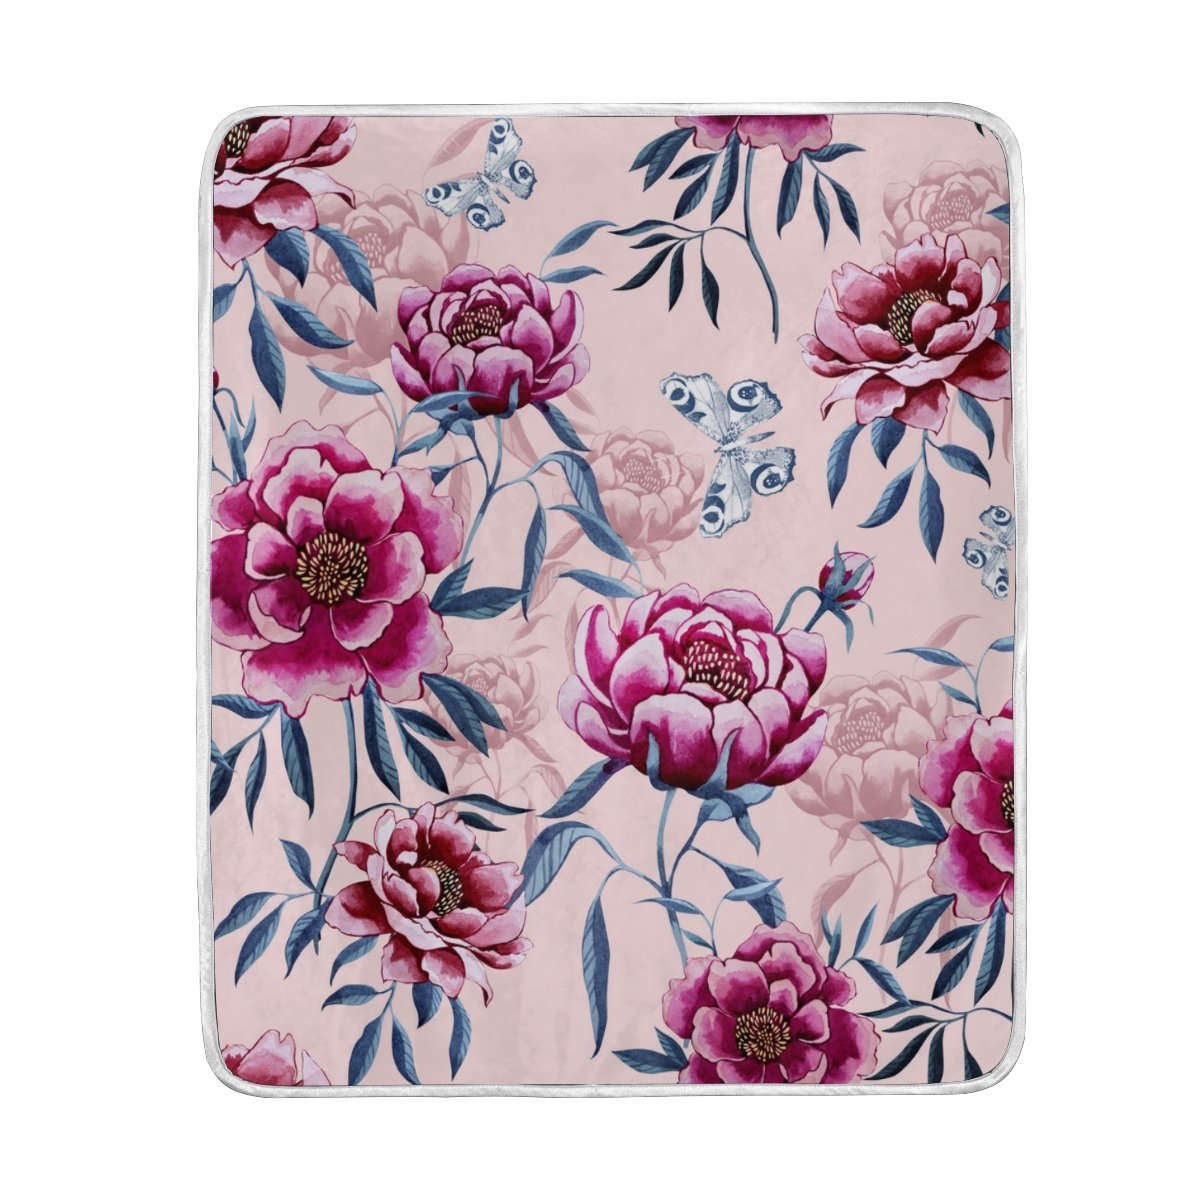 My Little Nest Warm Throw Blanket Peonies Leaves Butterflies Lightweight Microfiber Soft Blanket Everyday Use for Bed Couch Sofa 50'' x 60''